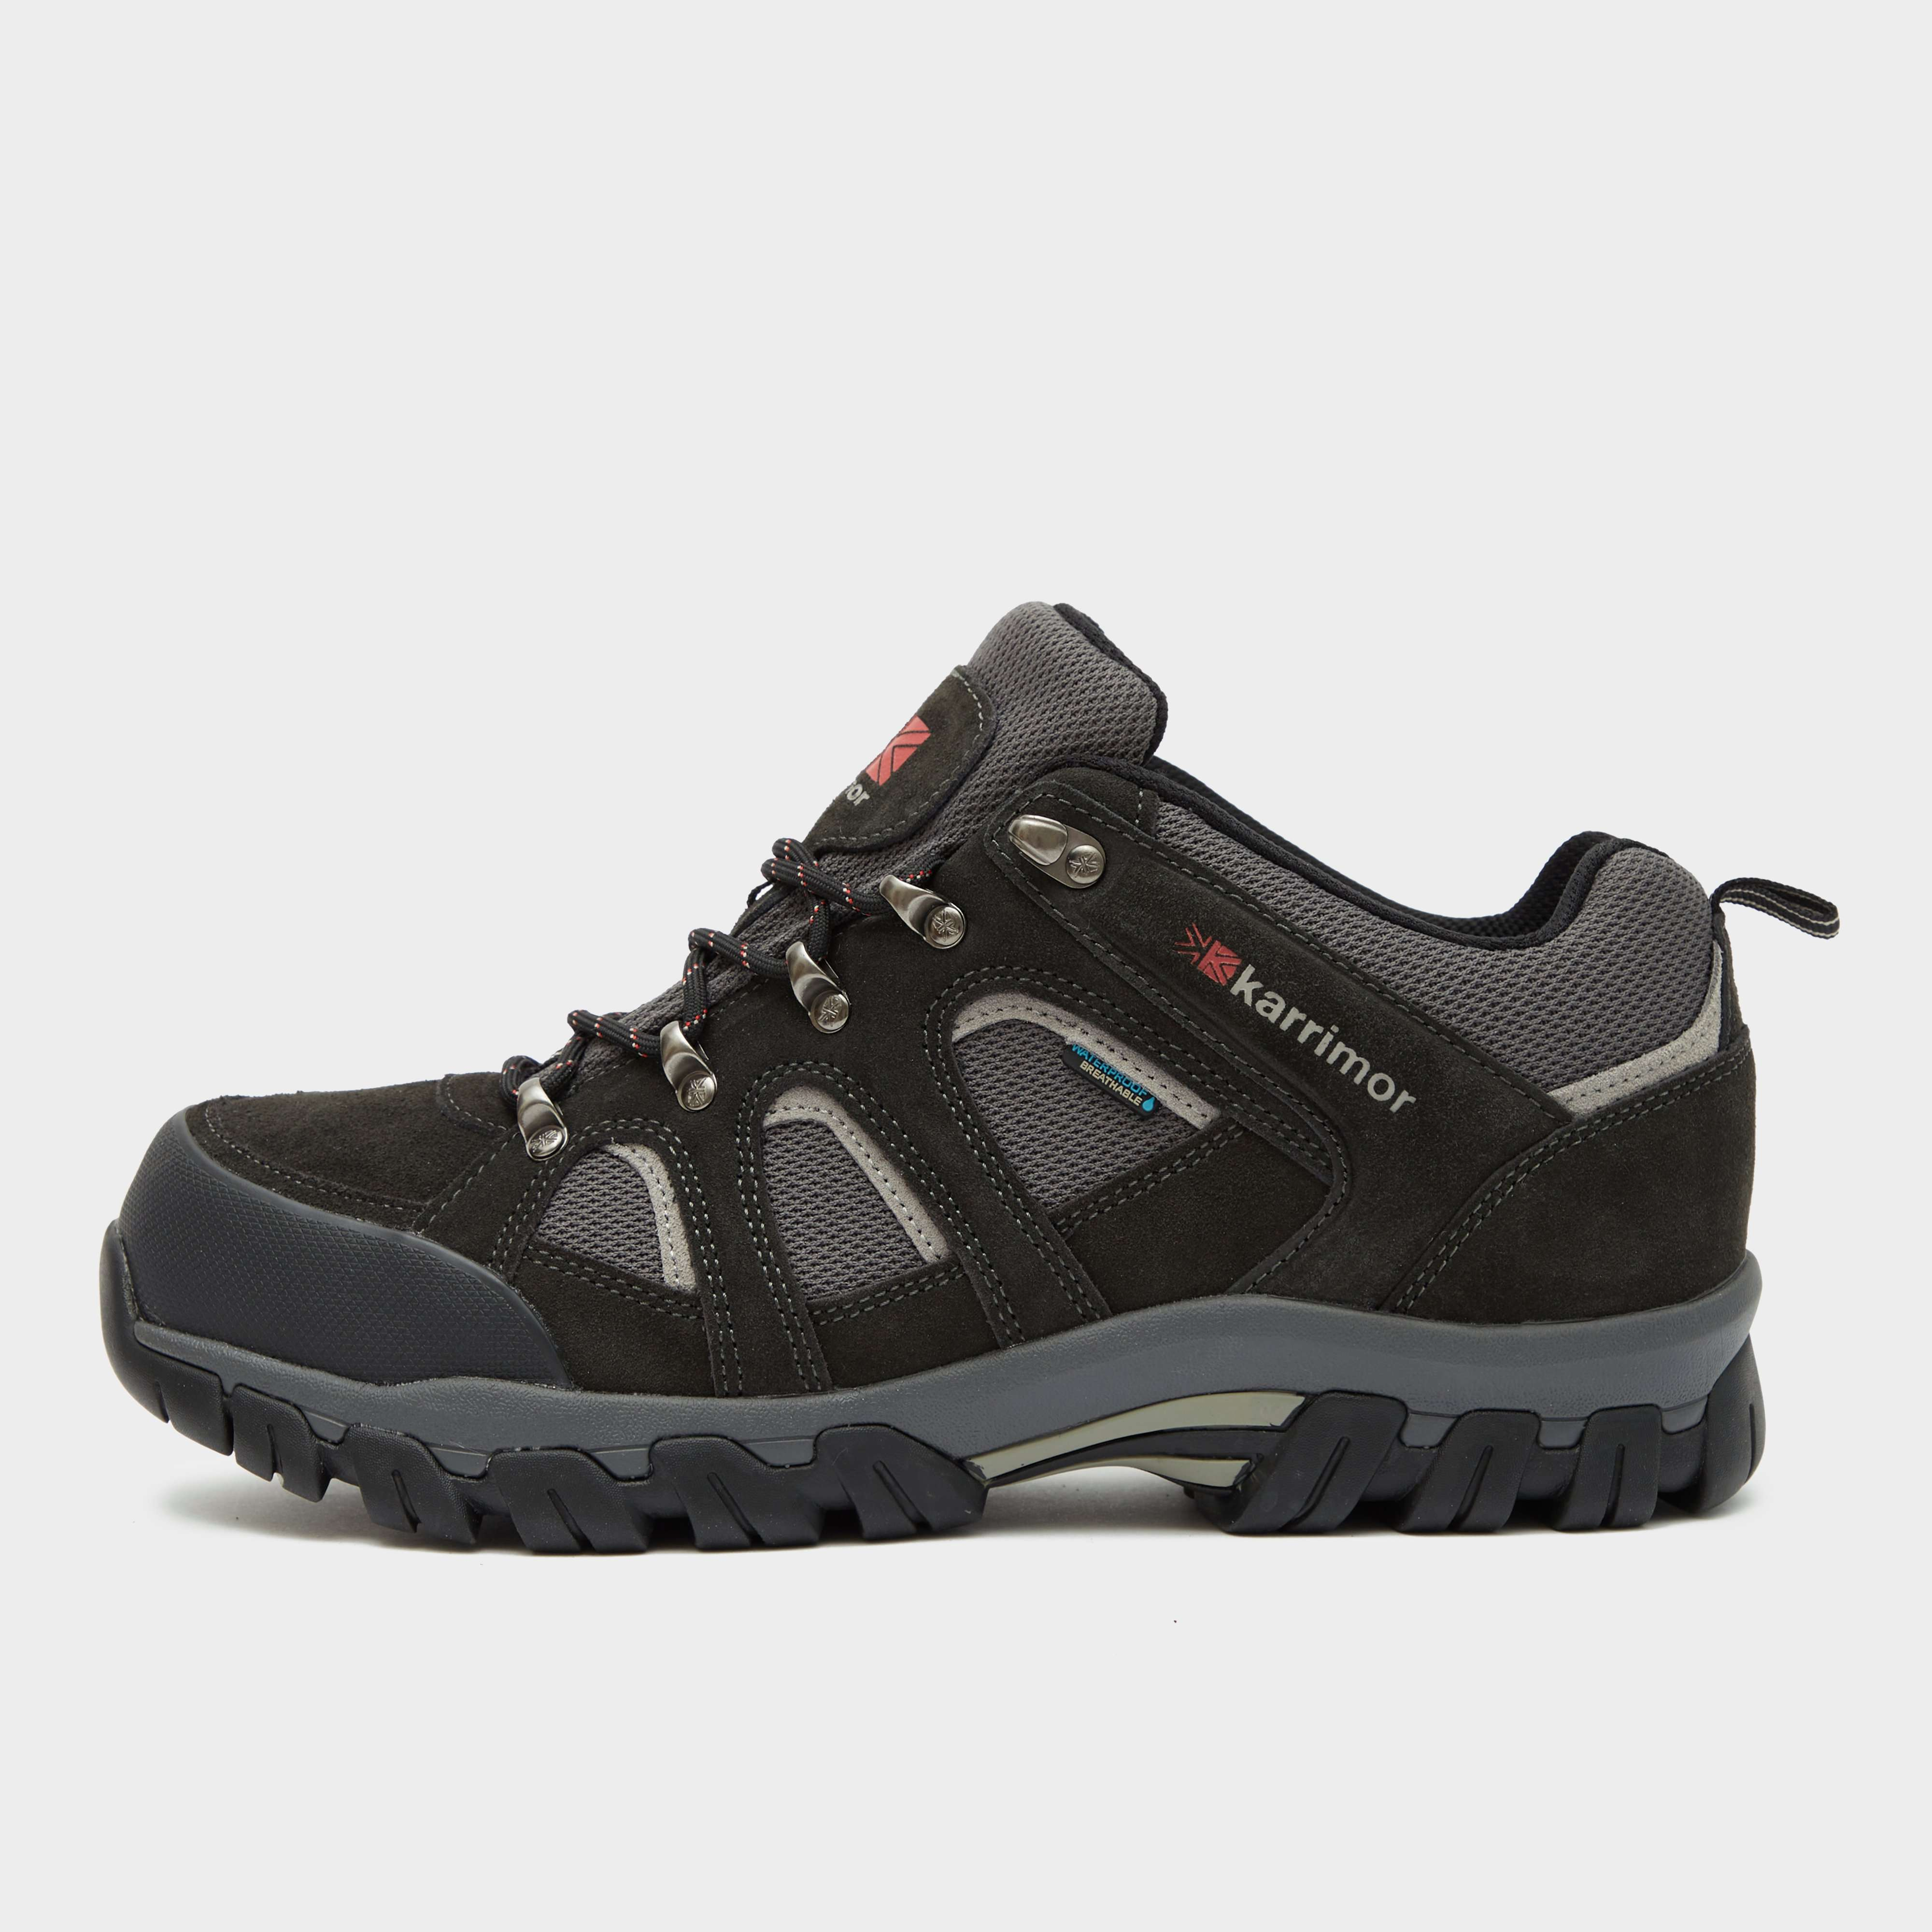 KARRIMOR Men's Bodmin IV Low Walking Shoe